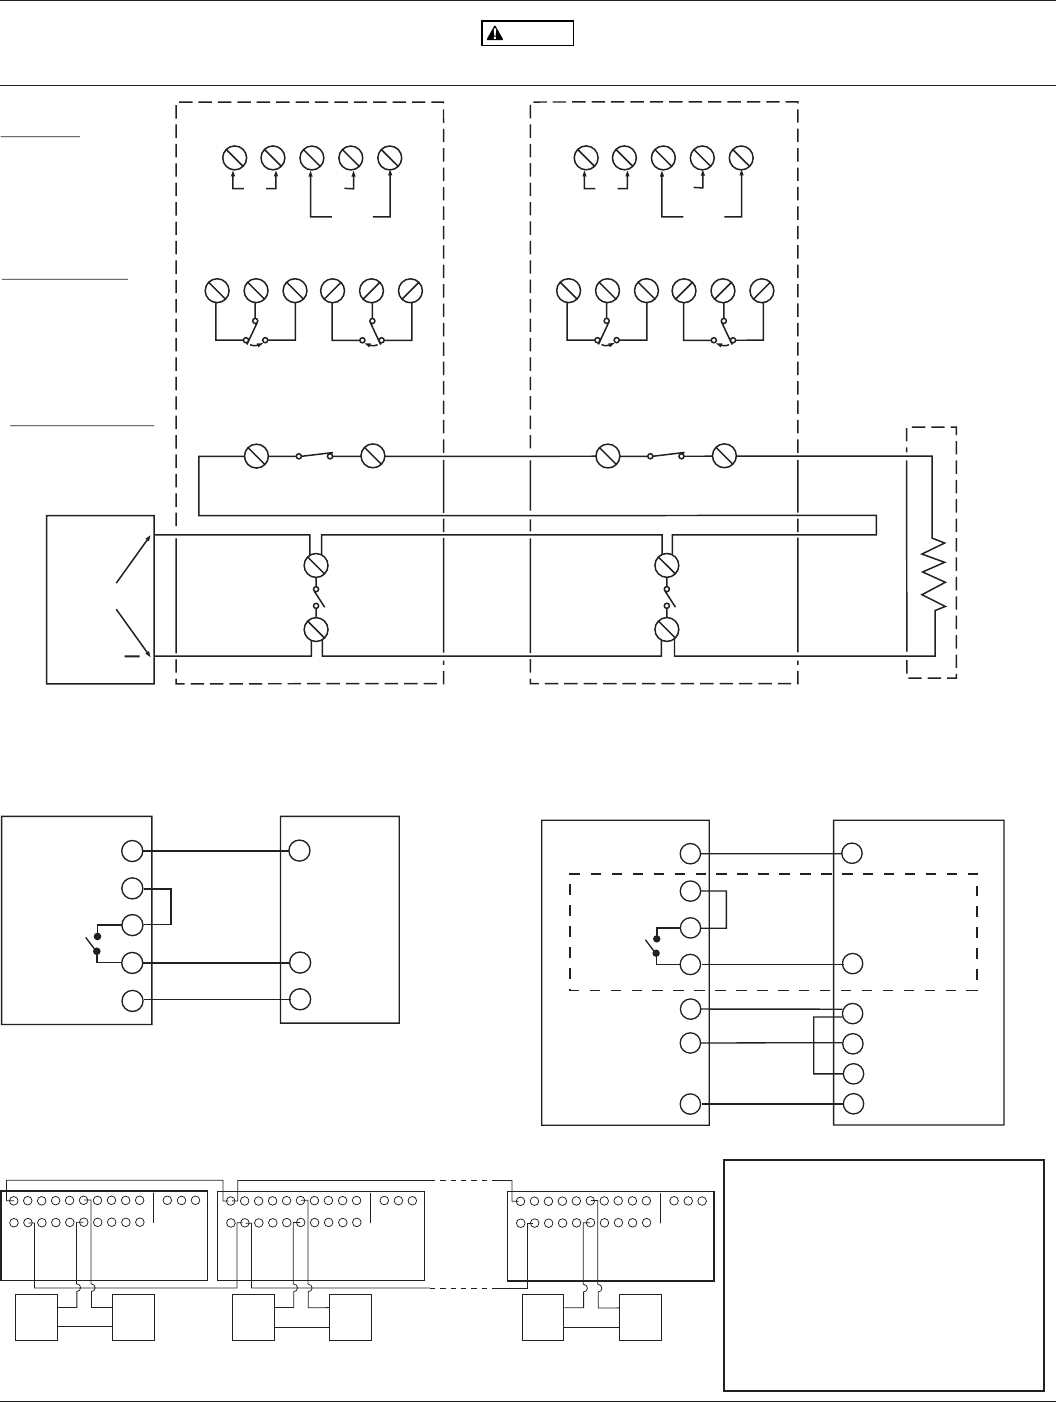 b74b230e 8564 44d2 8295 09df0d442456 bg6 page 6 of system sensor smoke alarm dh100acdclp user guide system sensor 2451 wiring diagram at panicattacktreatment.co